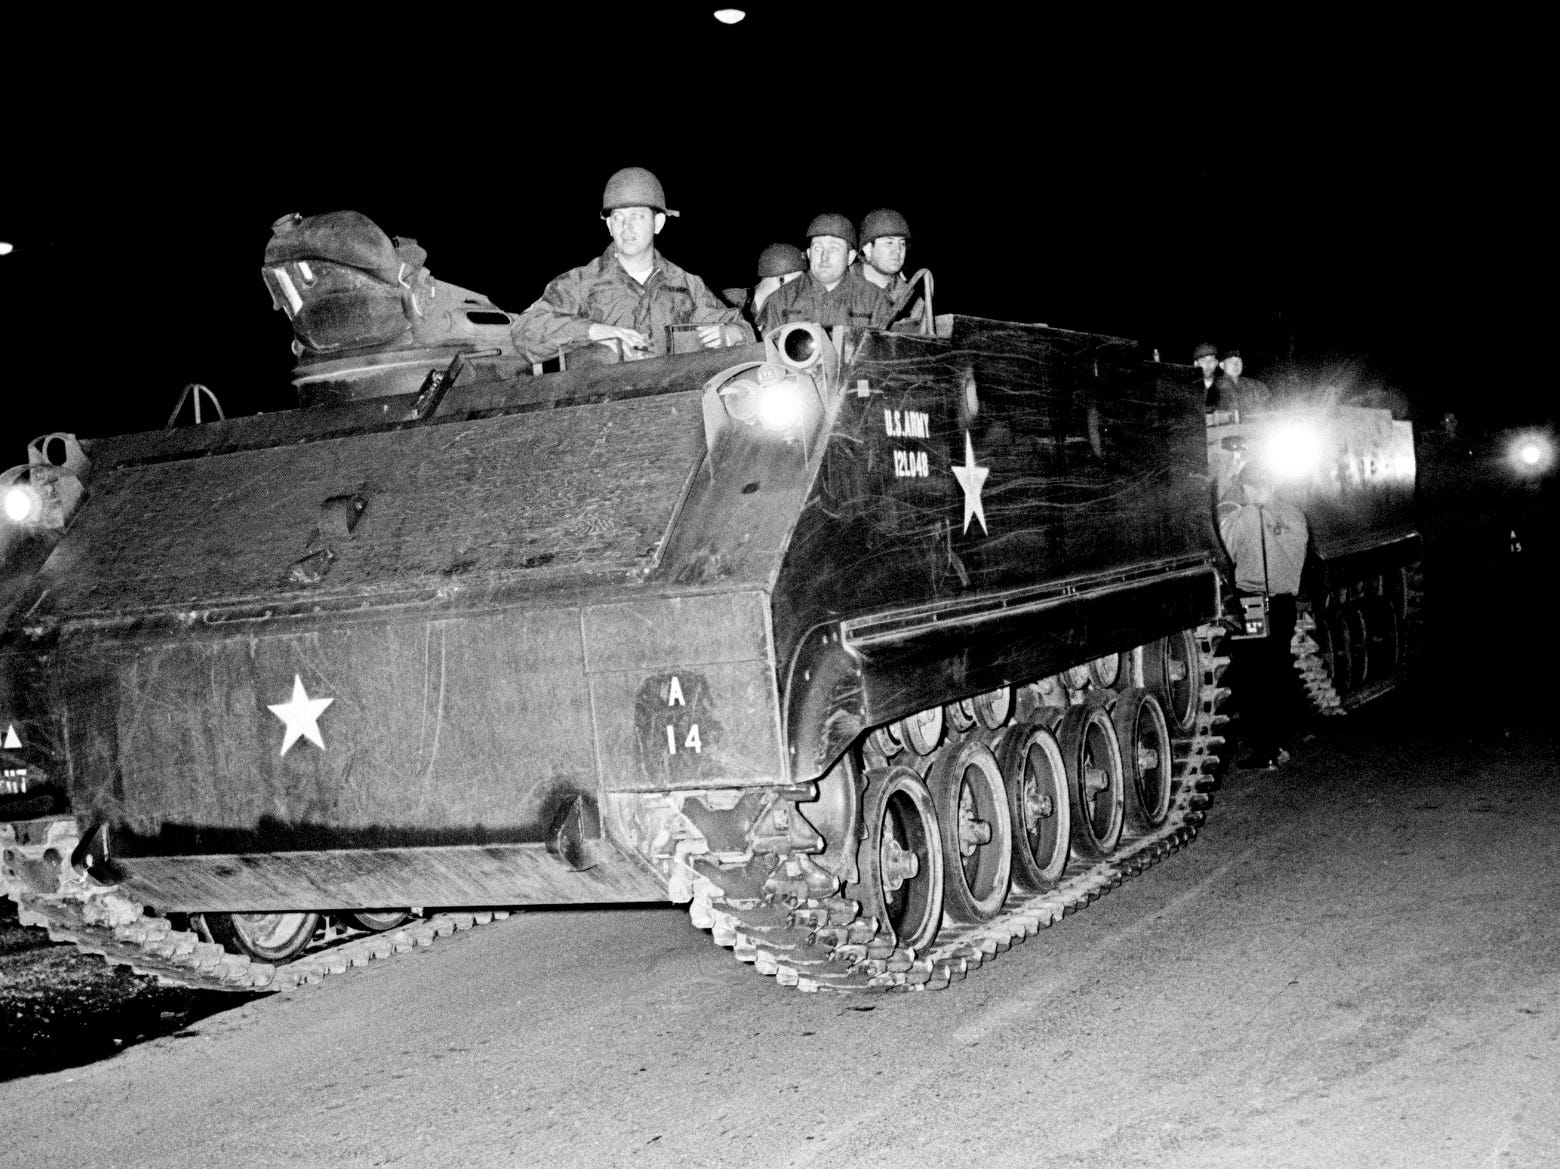 The armored personnel carriers of the Tennessee National Guard move in to seal off North Nashville after midnight April 5, 1968. The troops were called at the request of Metro Mayor Beverly Briley after rock throwing began about 8 p.m. and escalated into gunfire and scattered looting after the assassination of the Rev. Martin Luther King Jr. in Memphis.